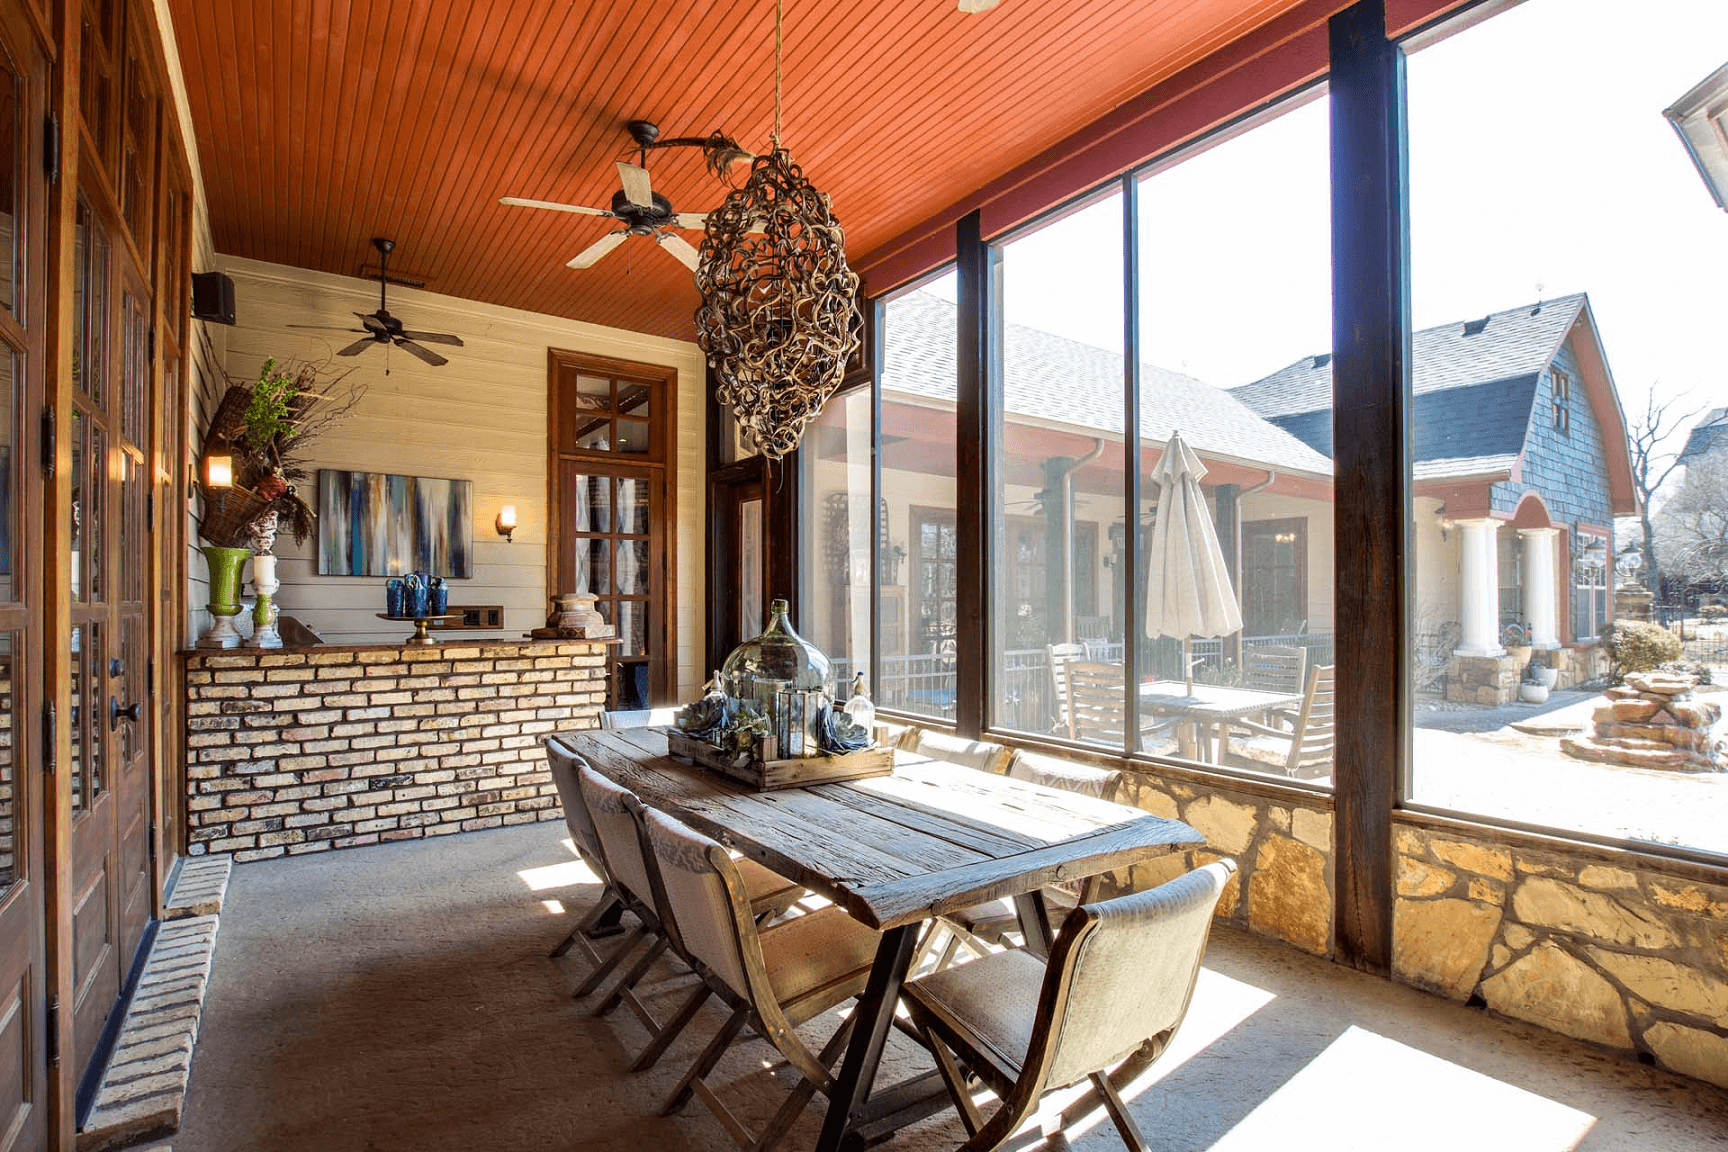 WOODEN DINING TABLE AND CHAIR RUSTIC FOR SCREENED PORCH